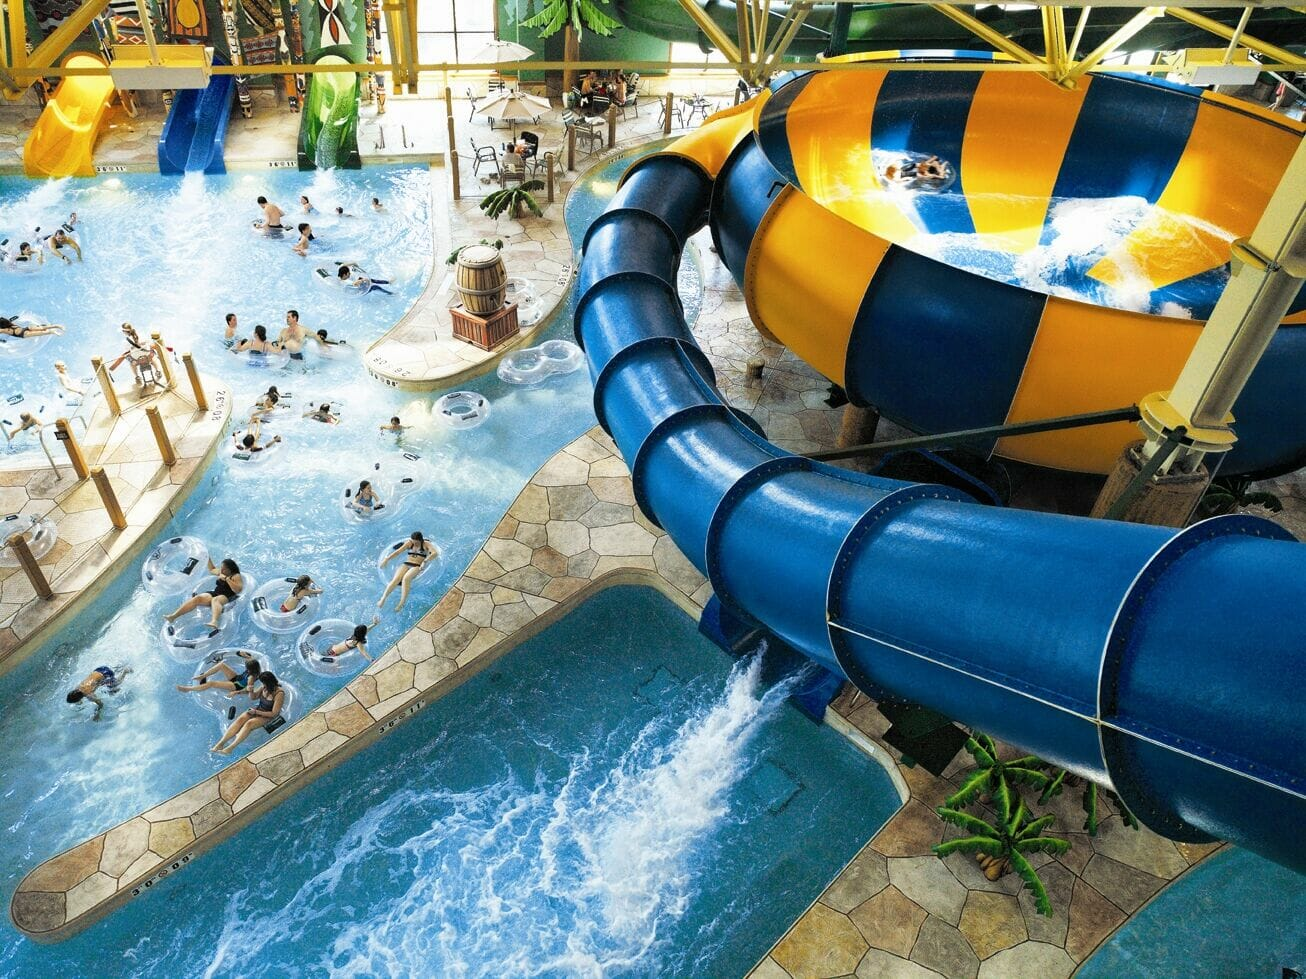 Enjoy Great Wolf Lodge Waterpark